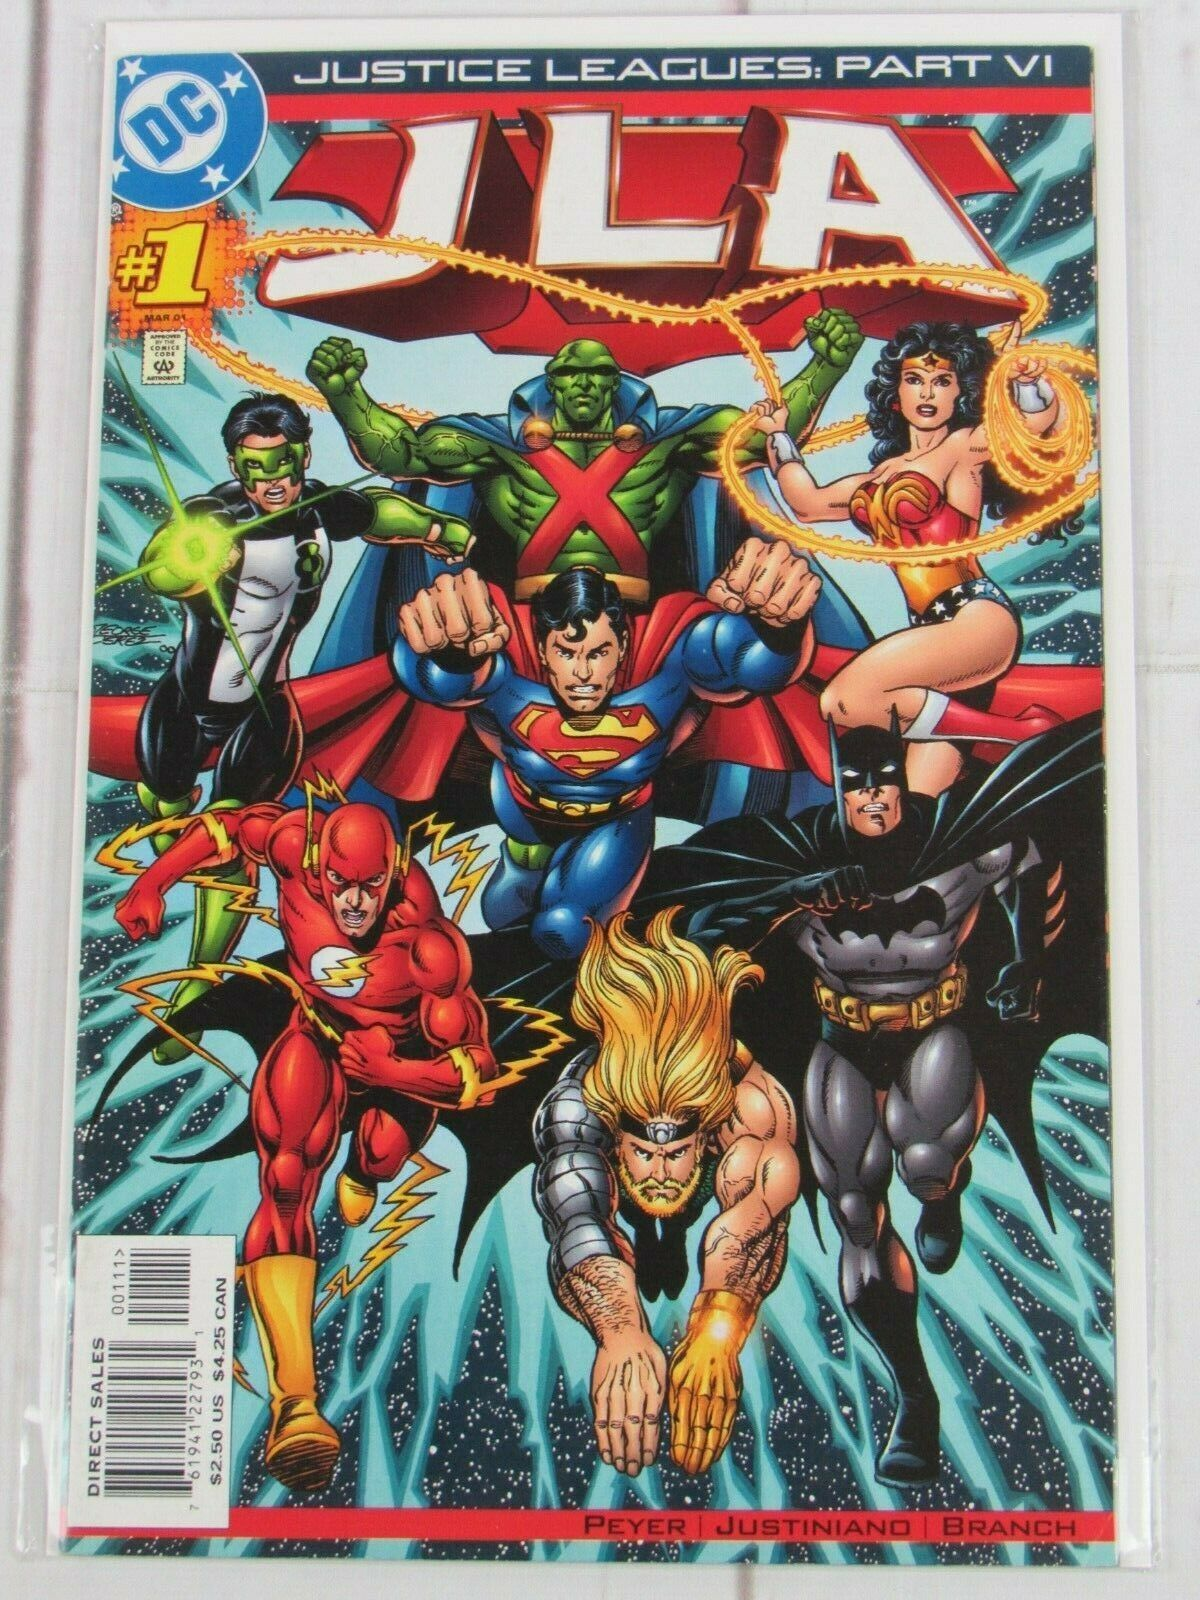 Justice Leagues JLA #1 2001 DC Comics - C4954